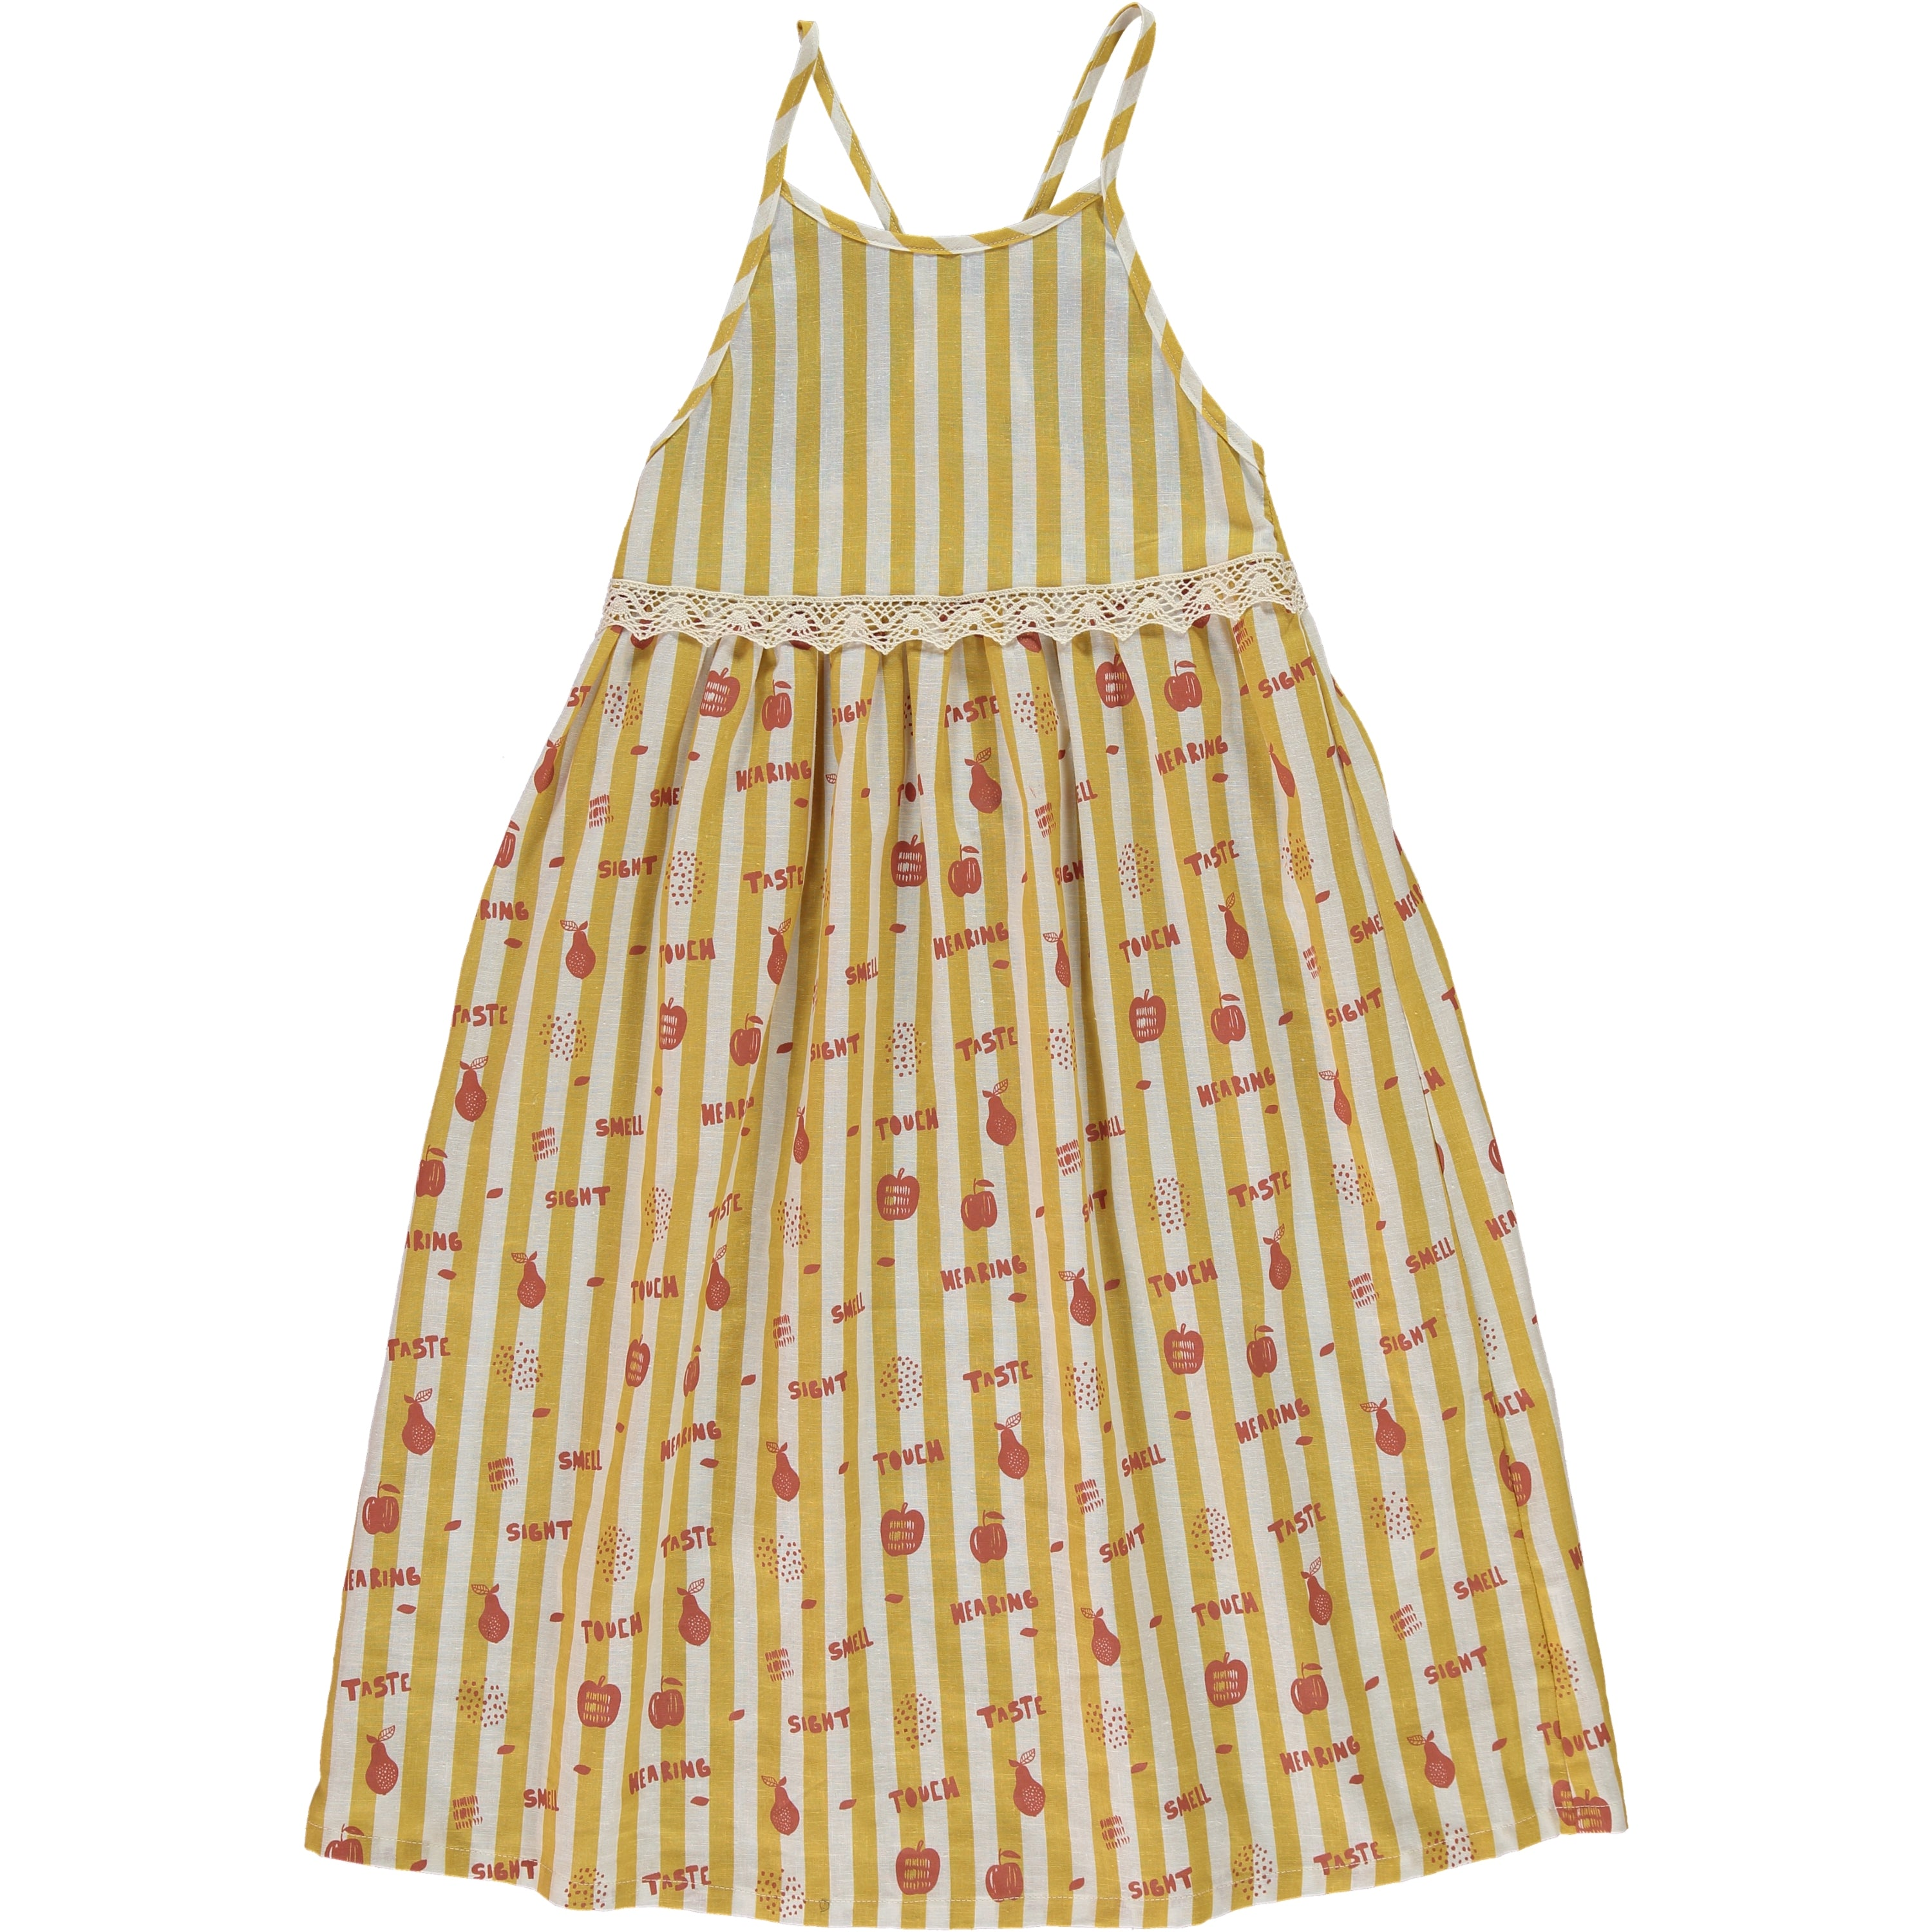 MASAI OCHRE STRIPED DRESS